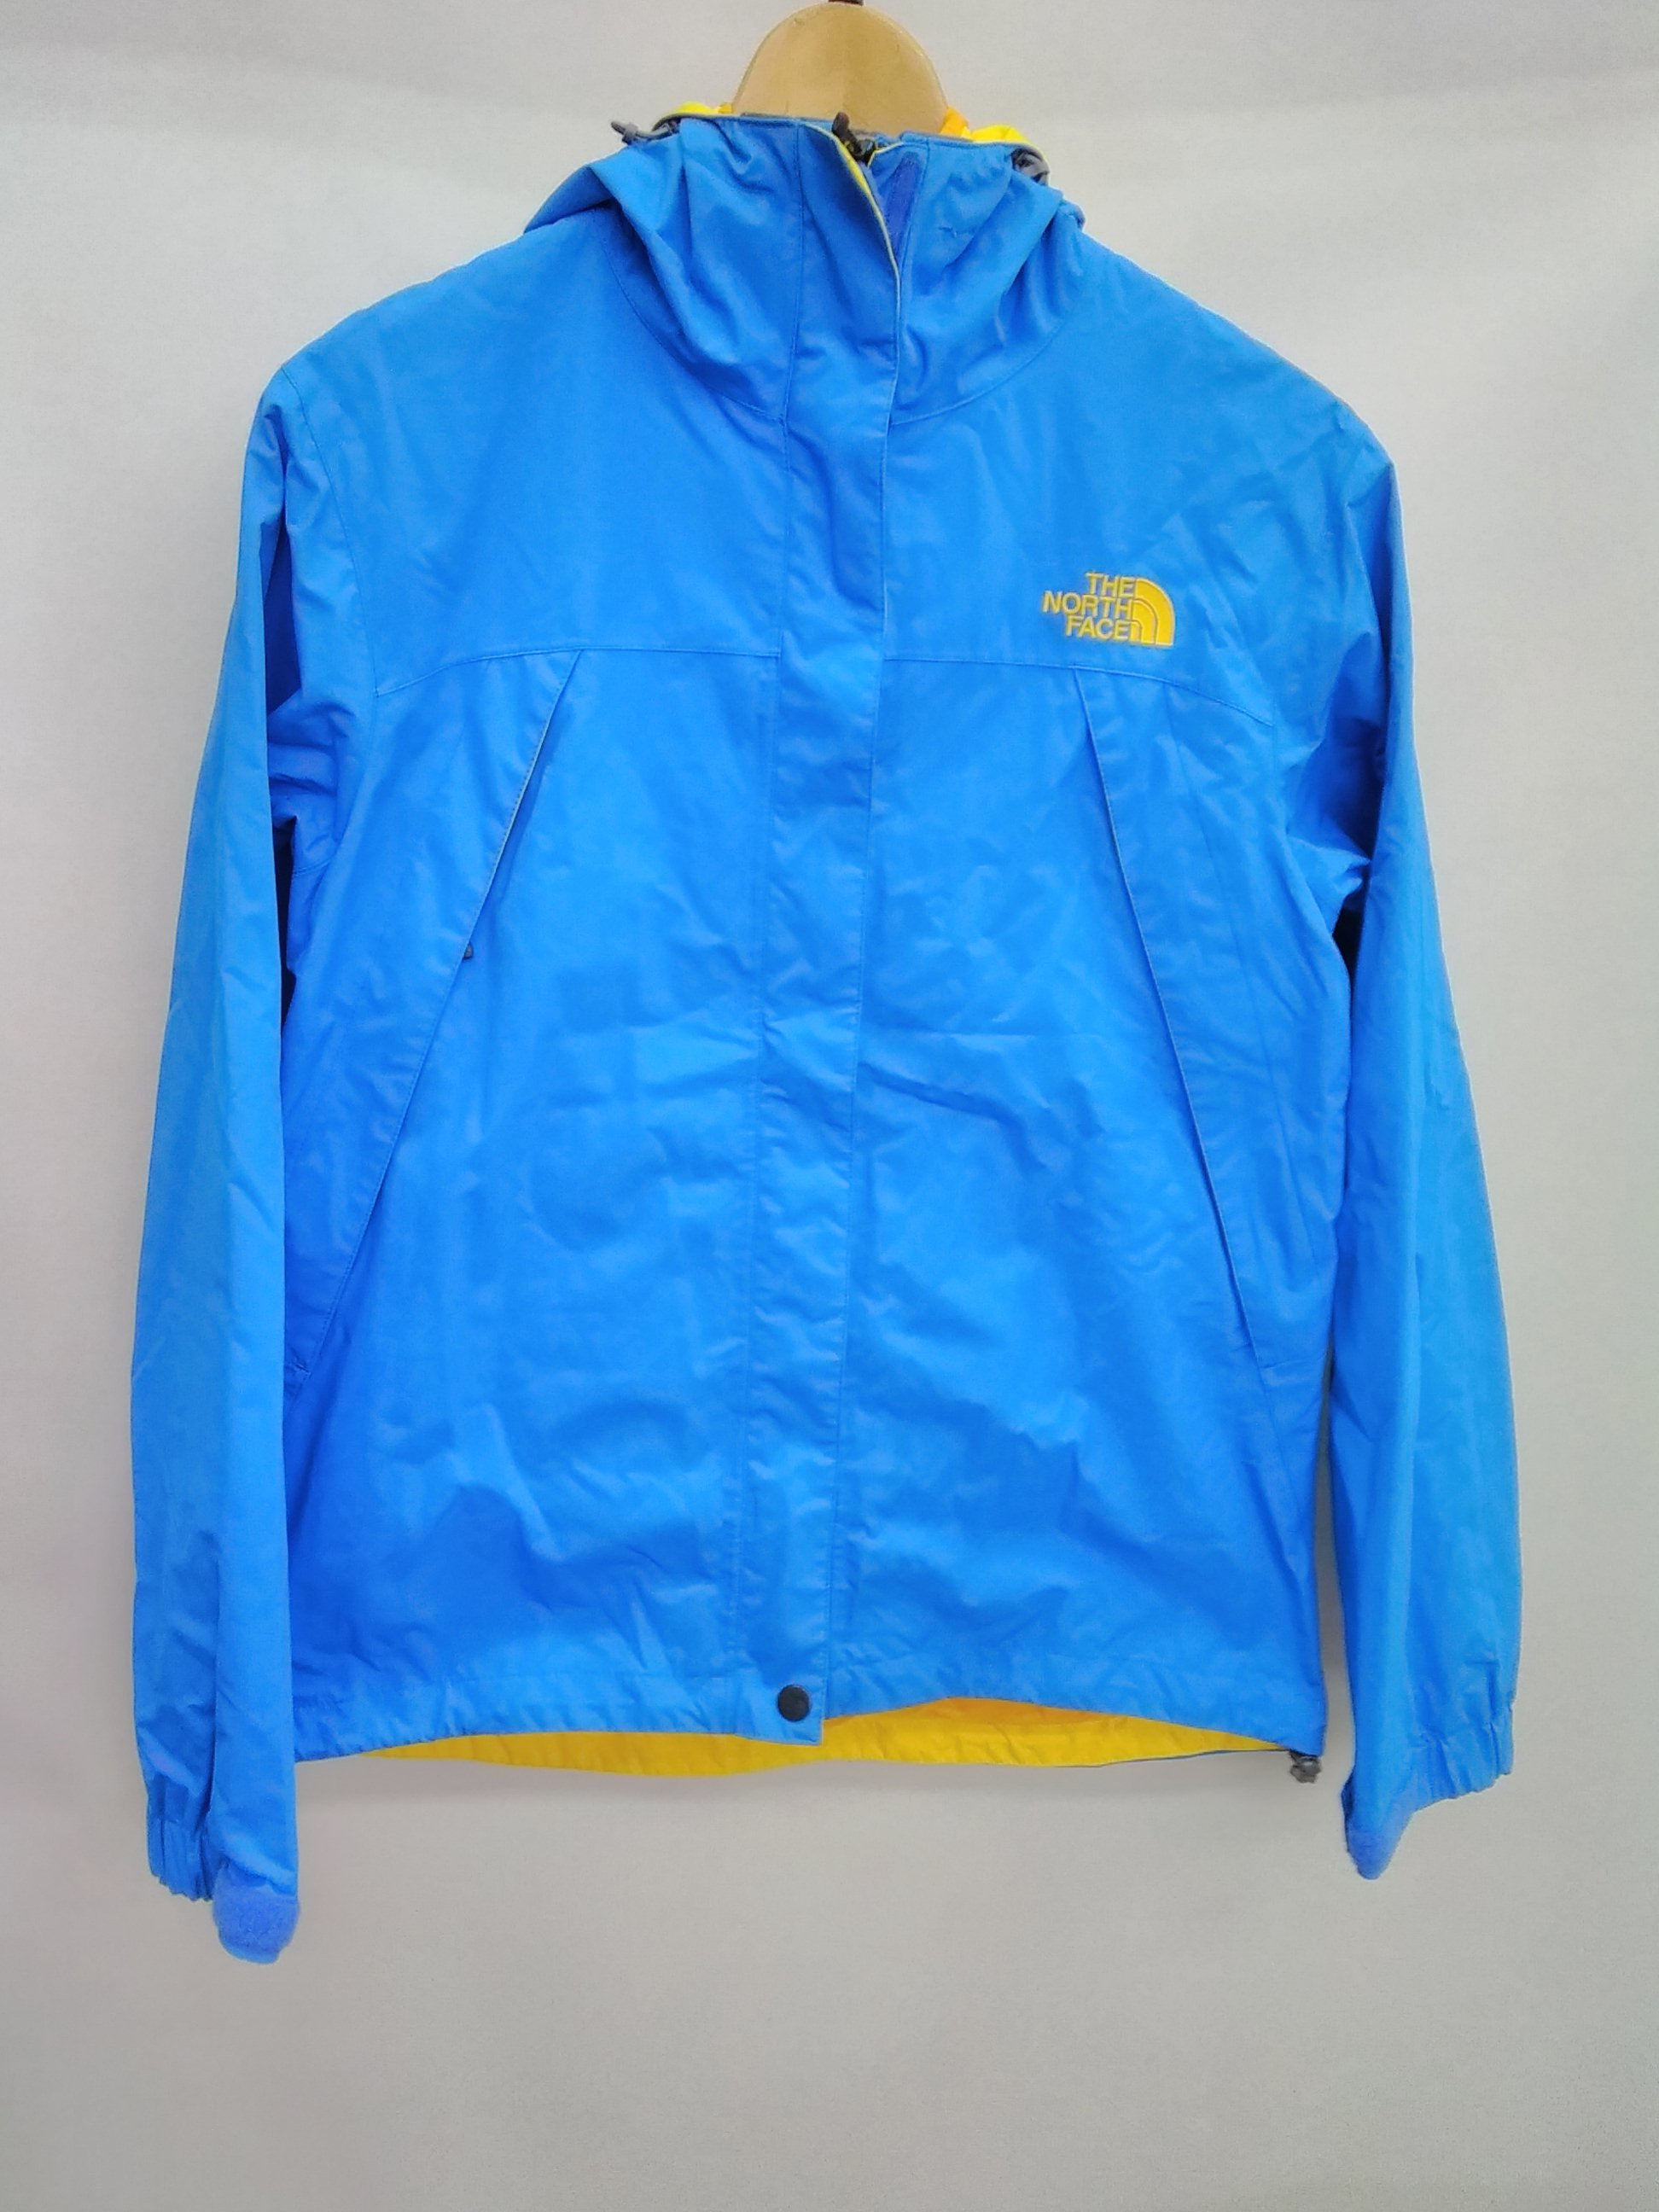 THE NORTH FACE SCOOP JACKET|THE NORTH FACE